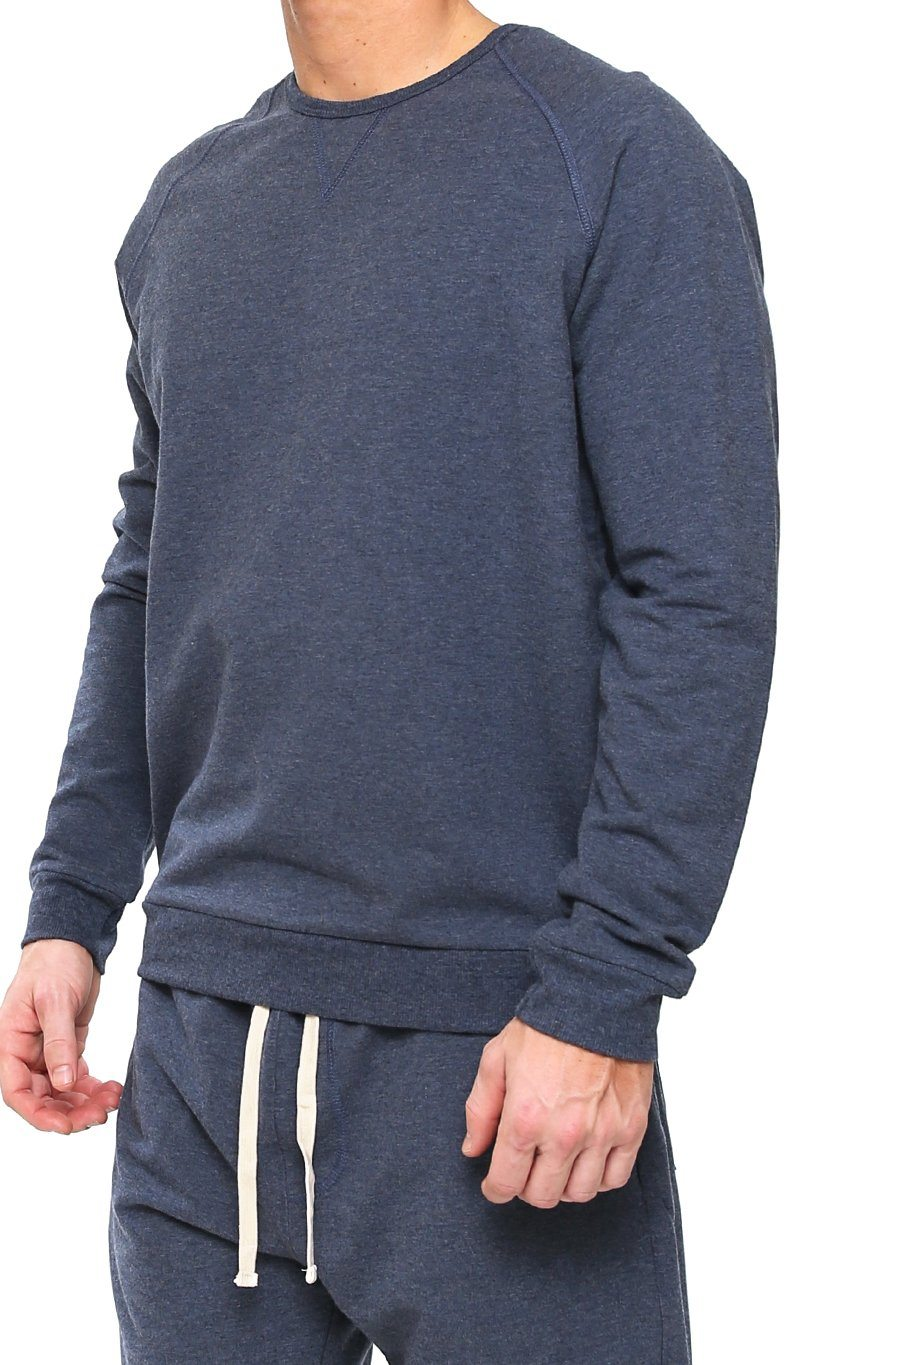 Denver Fleece Pullover - Lake - Shore